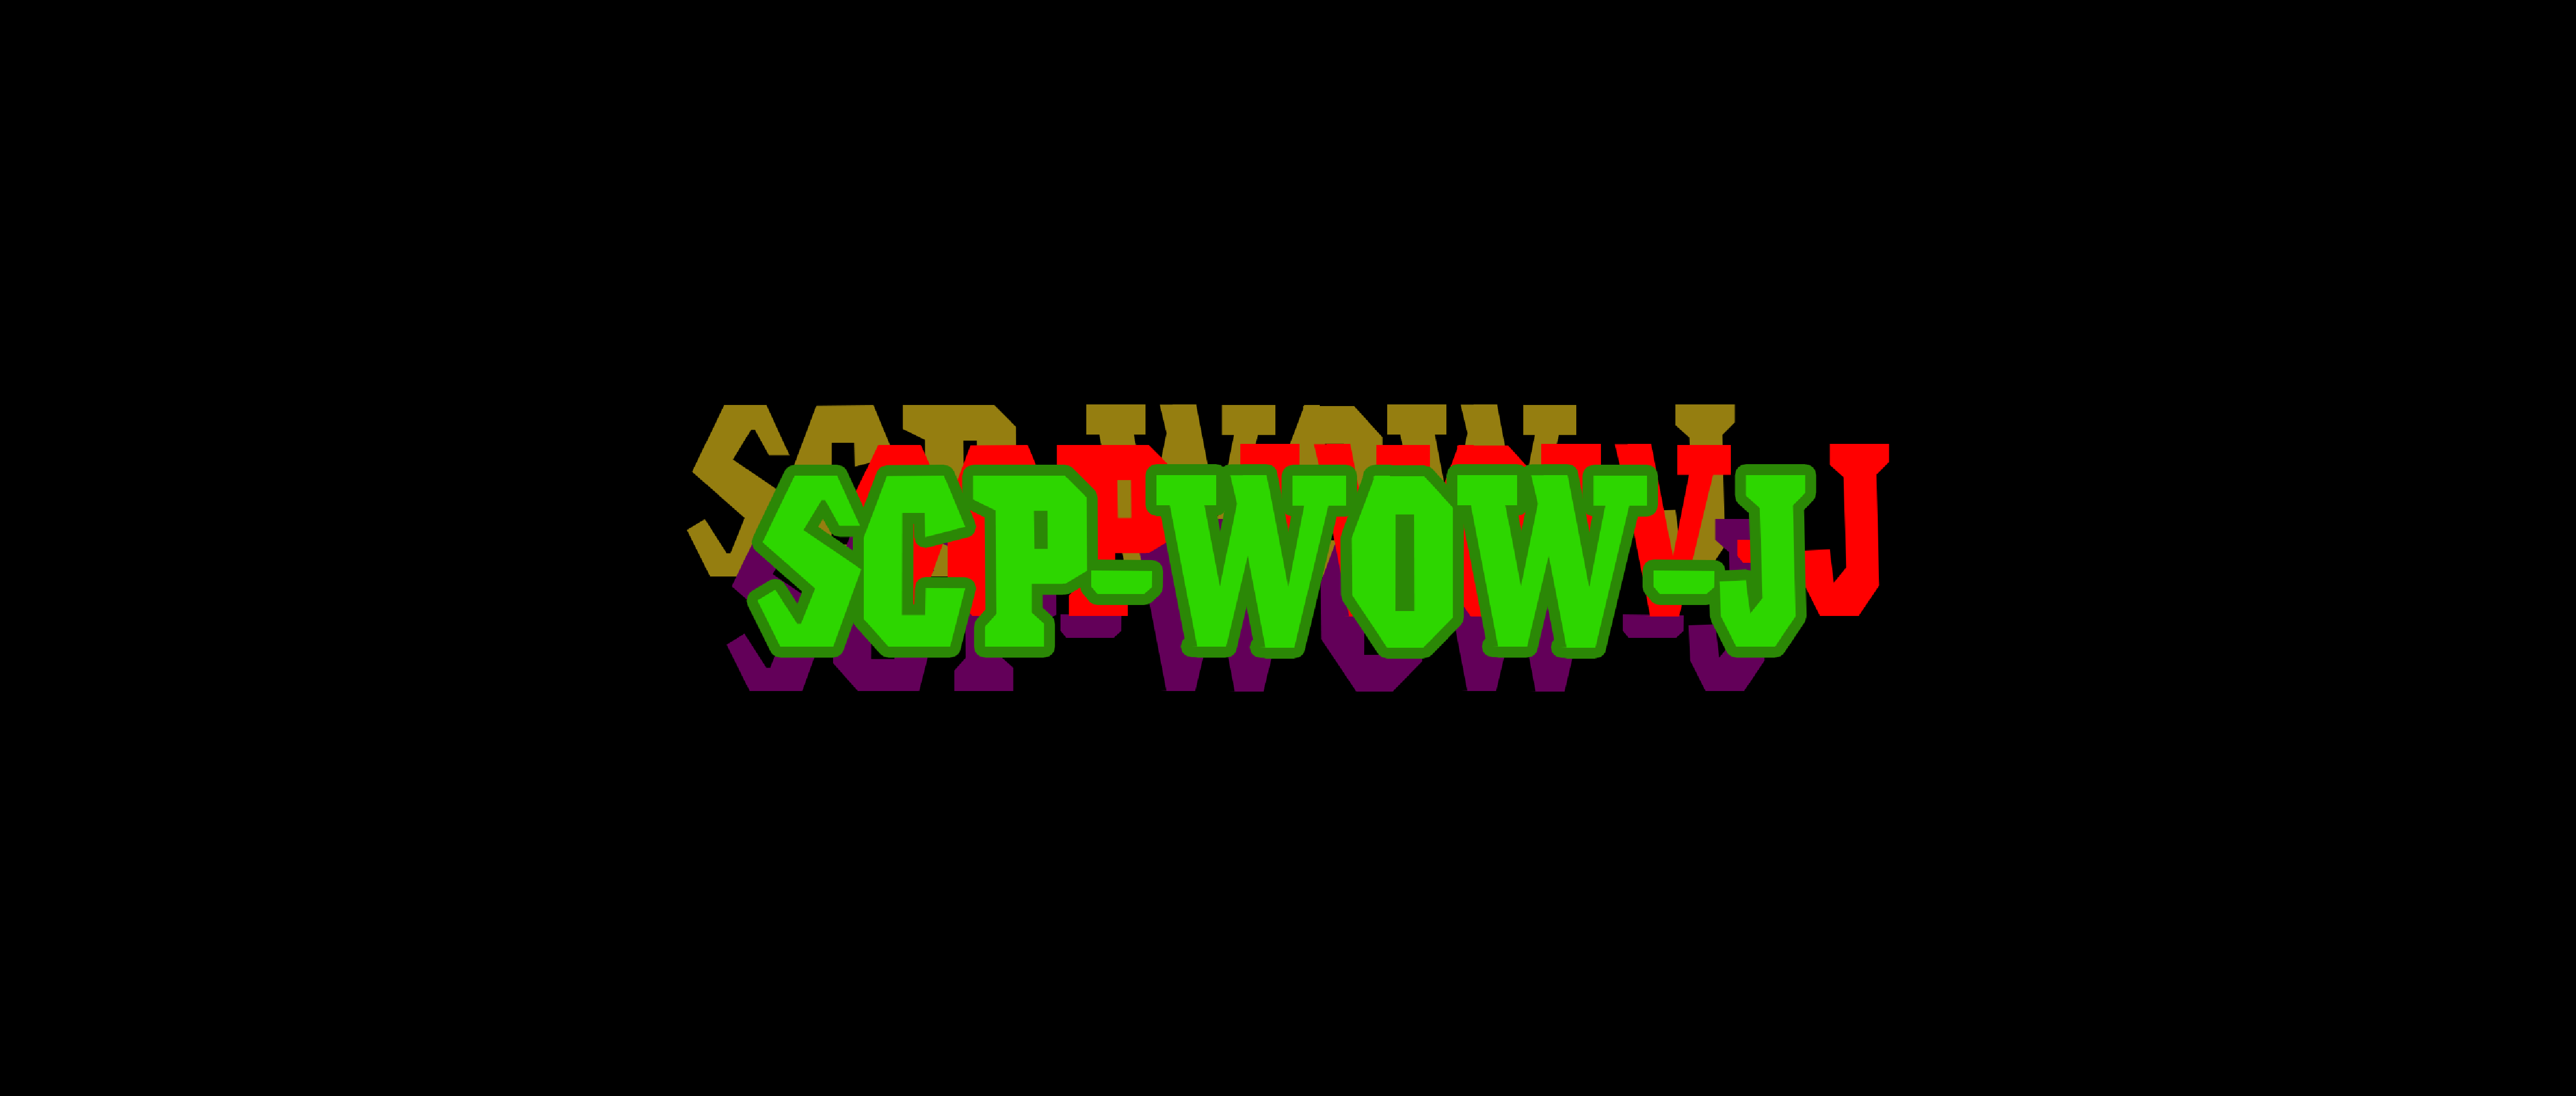 wow-j.png